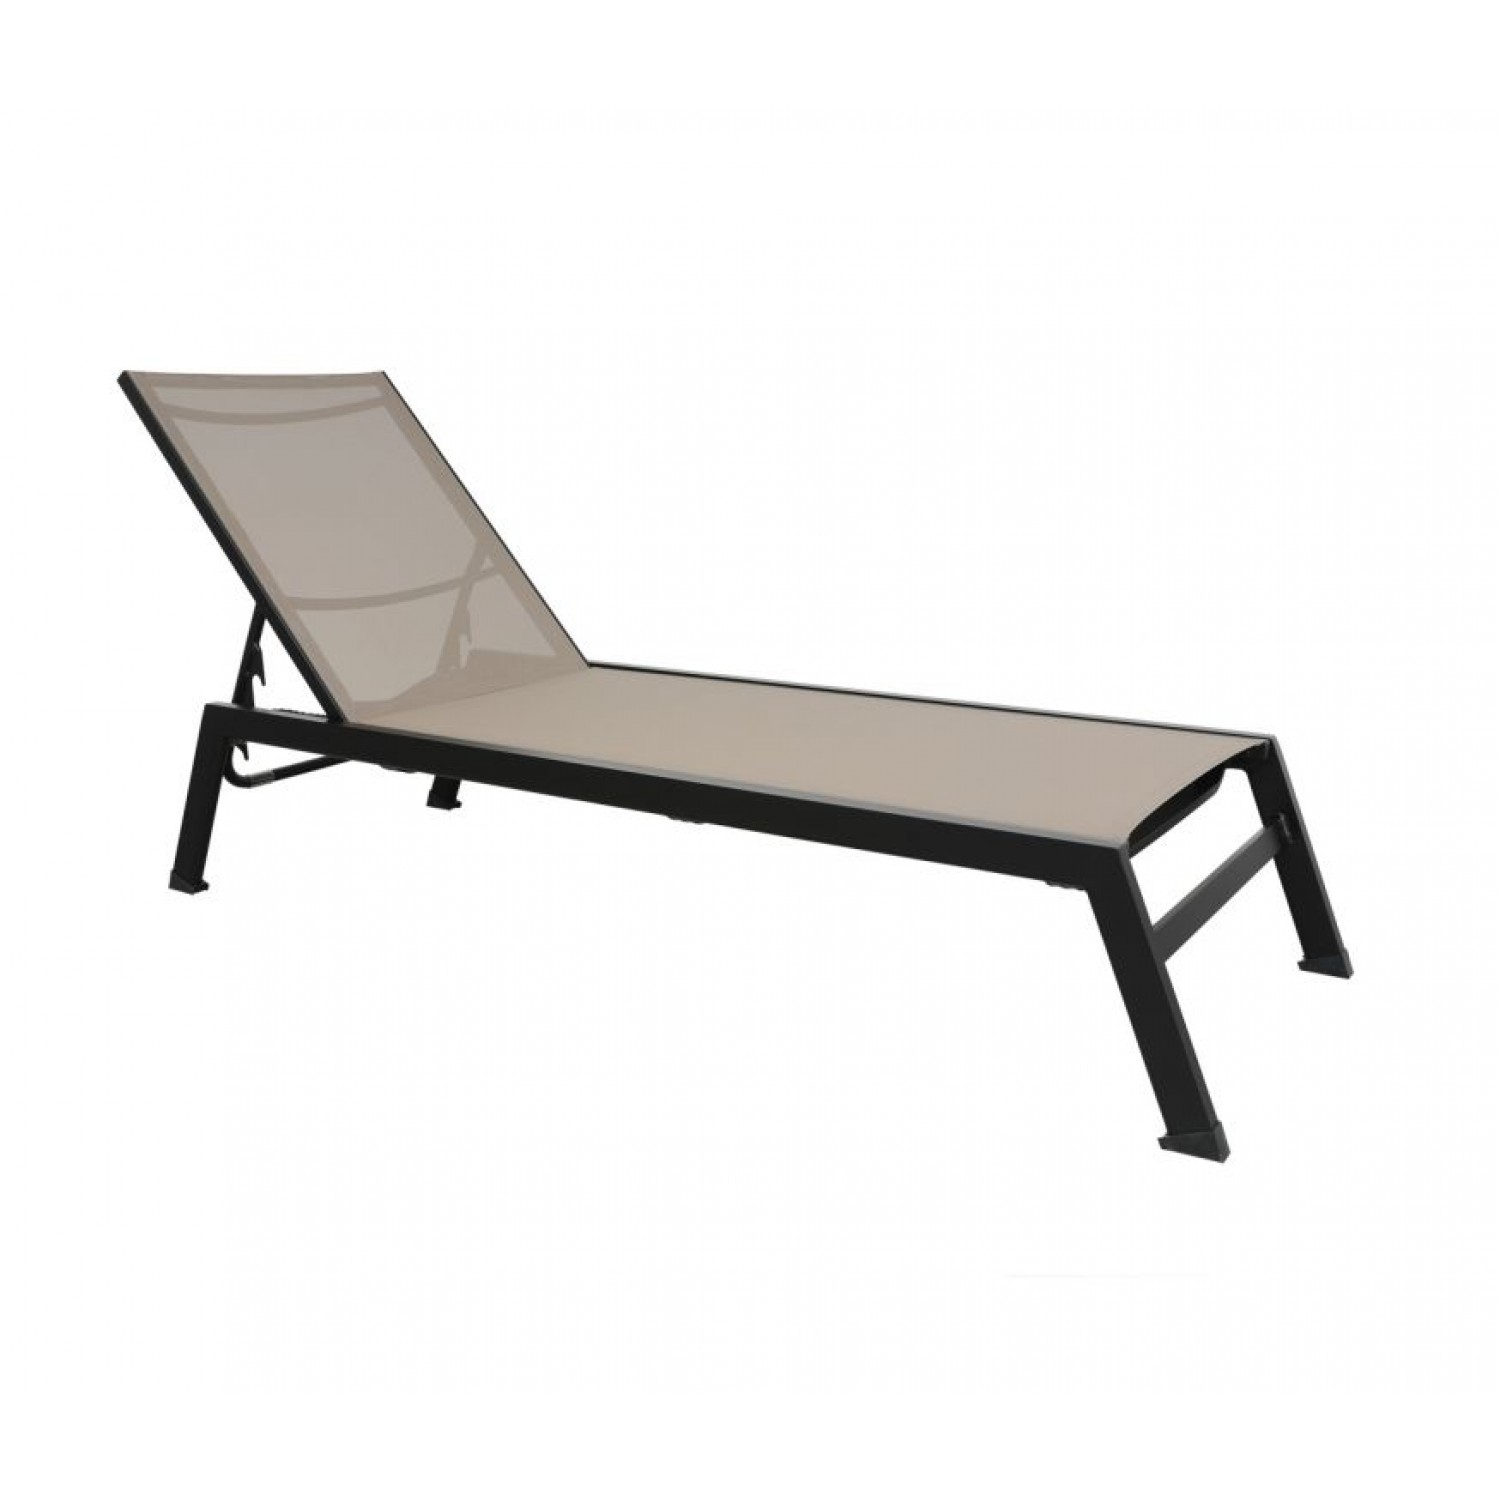 Element Outdoor Chaise Lounger